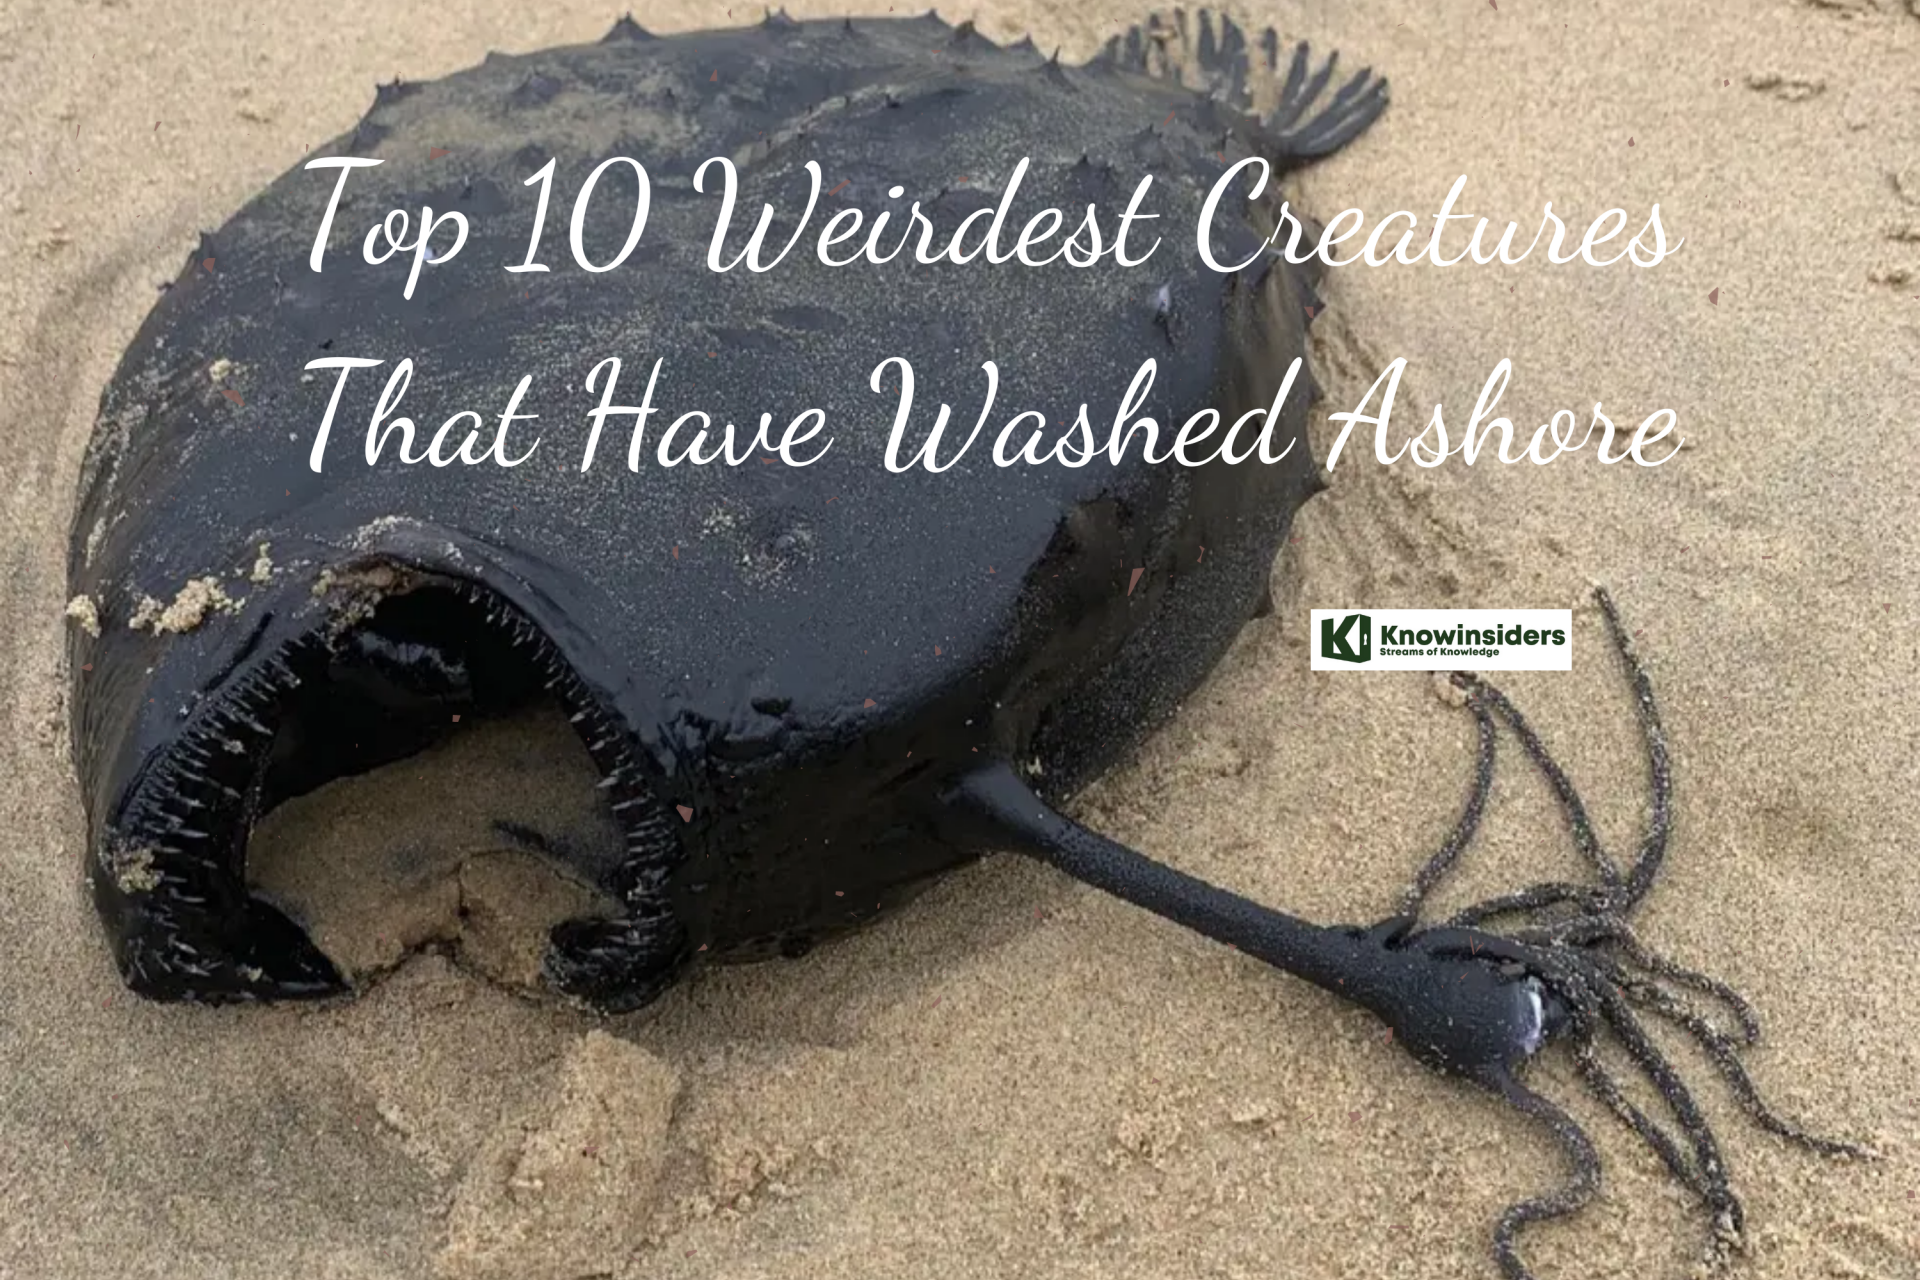 Top 10 Weirdest Creatures That Have Washed Ashore